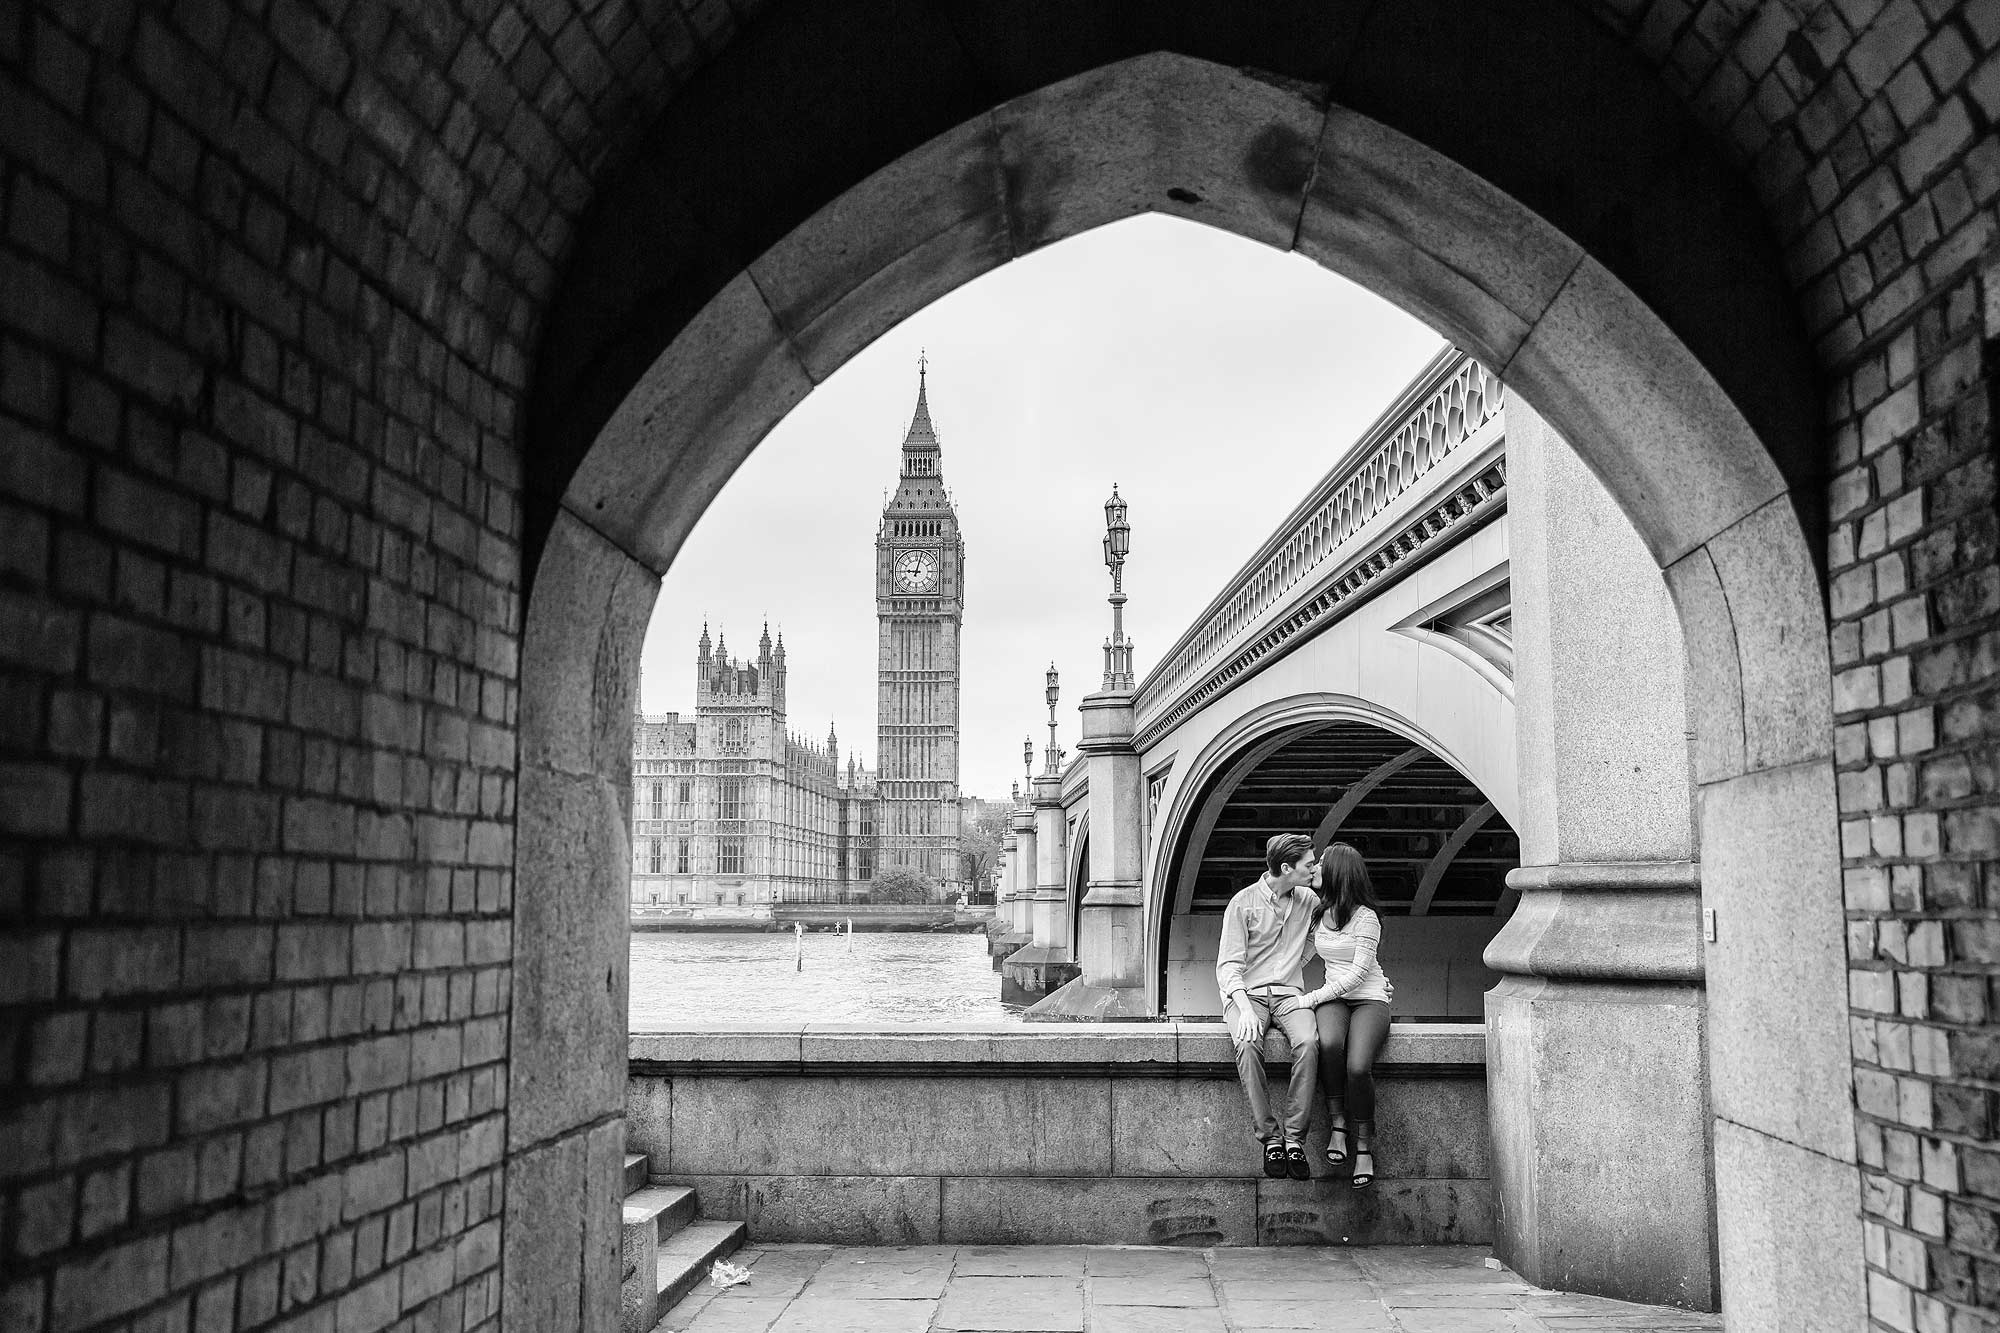 The engaged couple kissed under a bridge, black and white with Big Ben in the background.